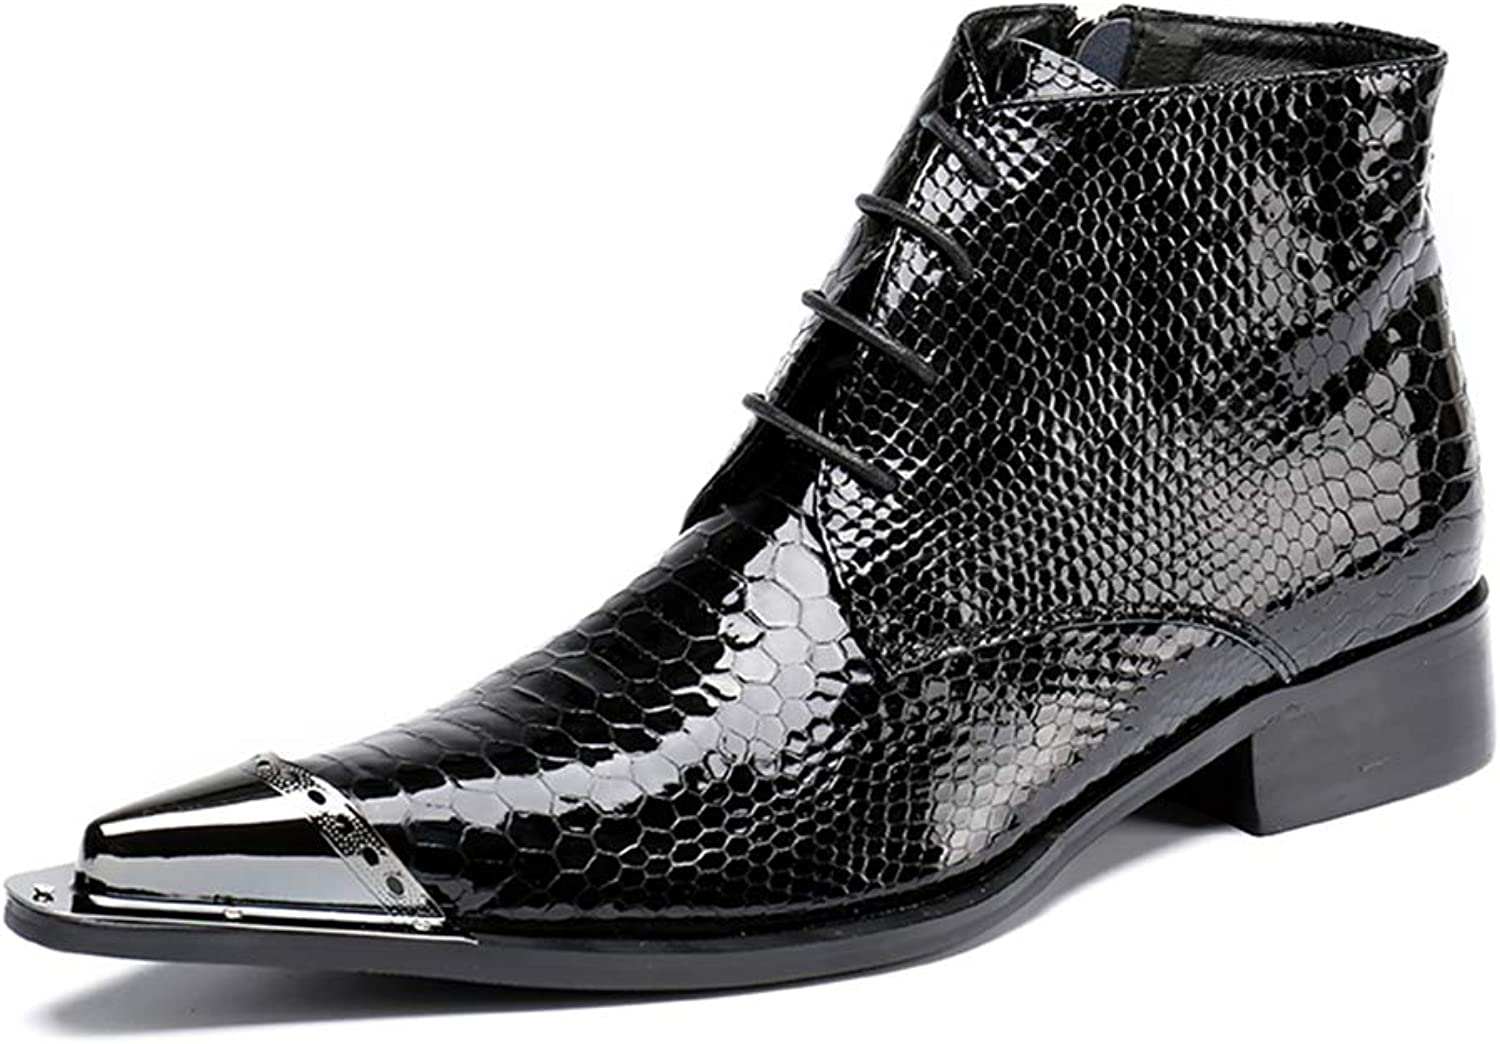 Mens Western Cowboy Boots Leather shoes Lace up Ankle Boots Pointed Toe Black Classic Smart Wedding Evening Party